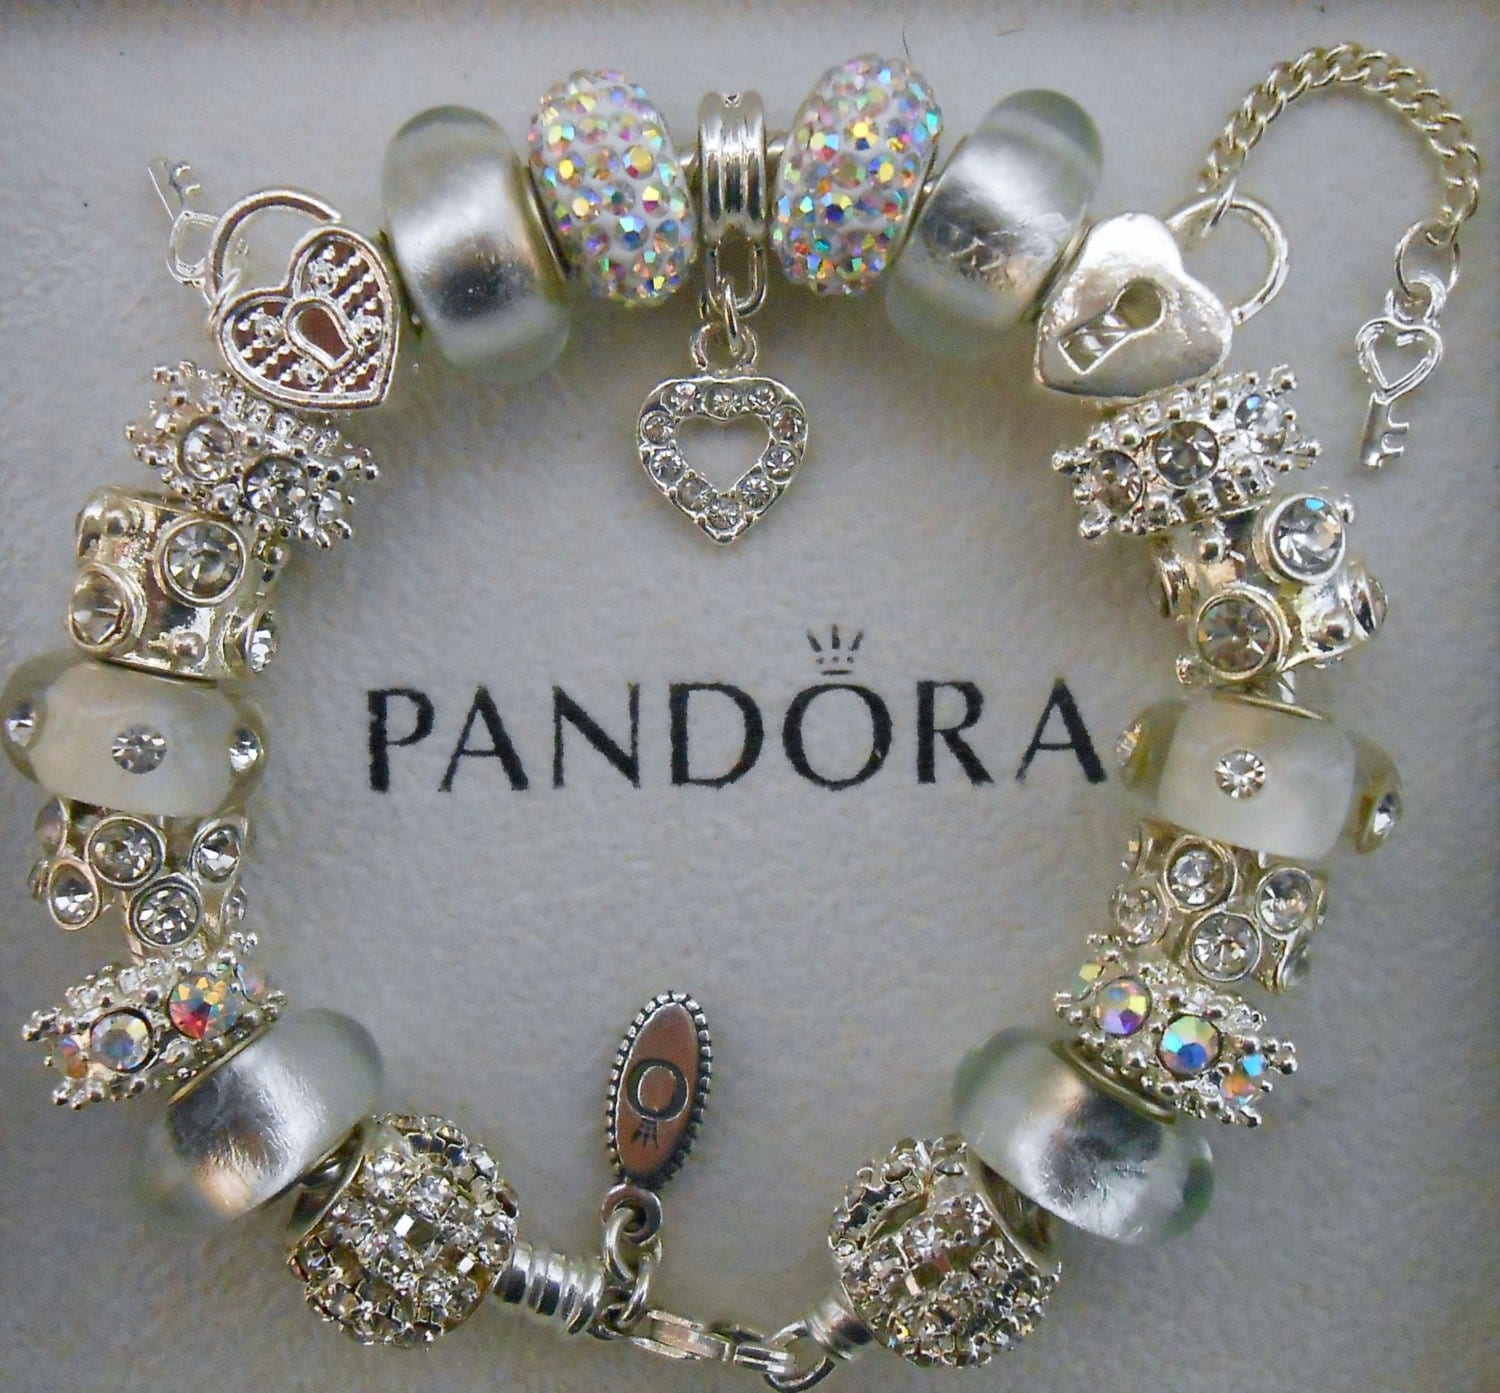 Jewelry Box For Pandora Charms: Authentic Pandora Bracelet Or Non-branded European Charm